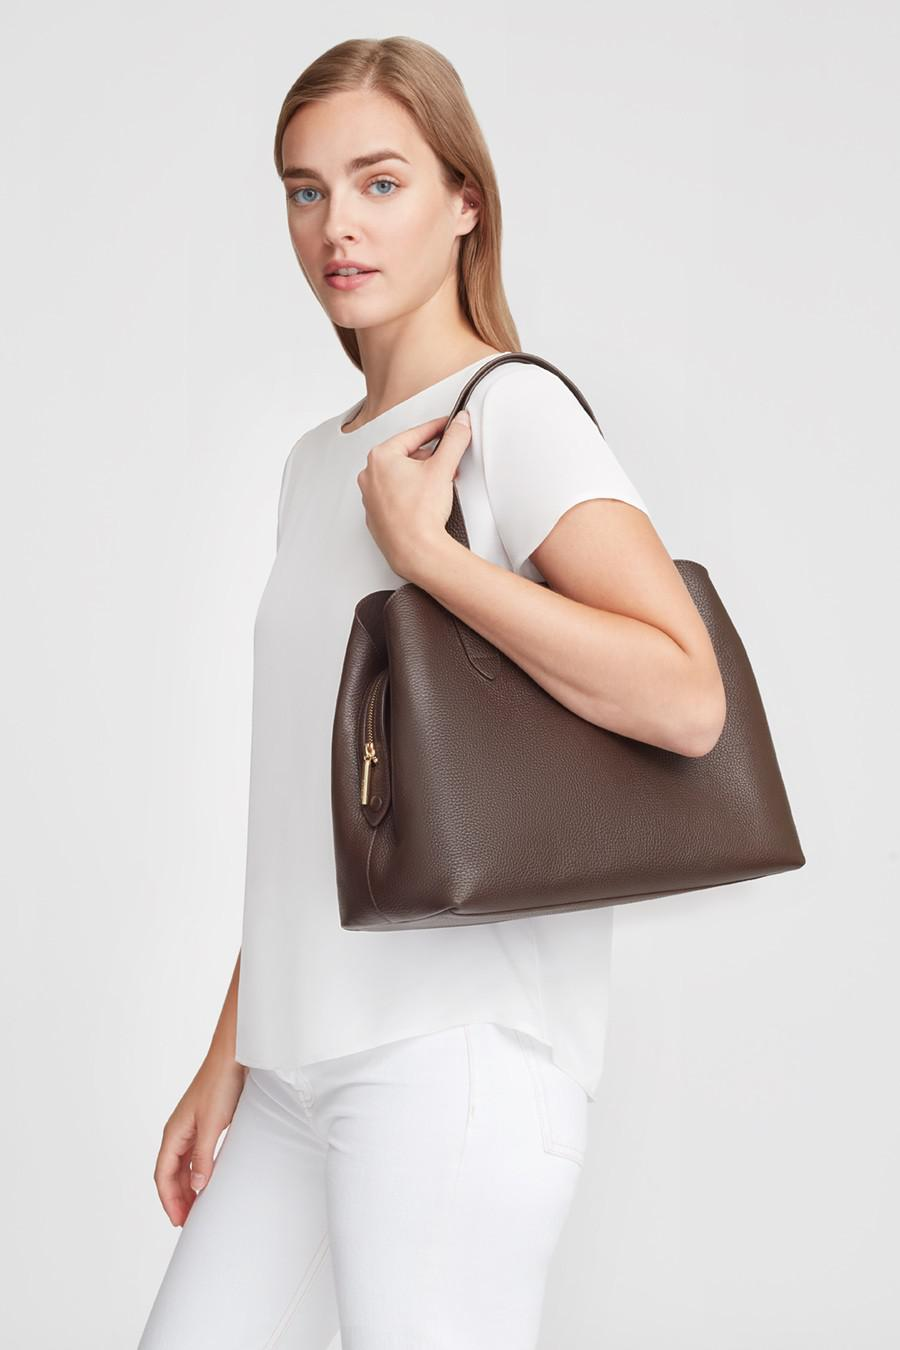 Women's Zippered Satchel Bag in Chocolate | Pebbled Leather by Cuyana 4